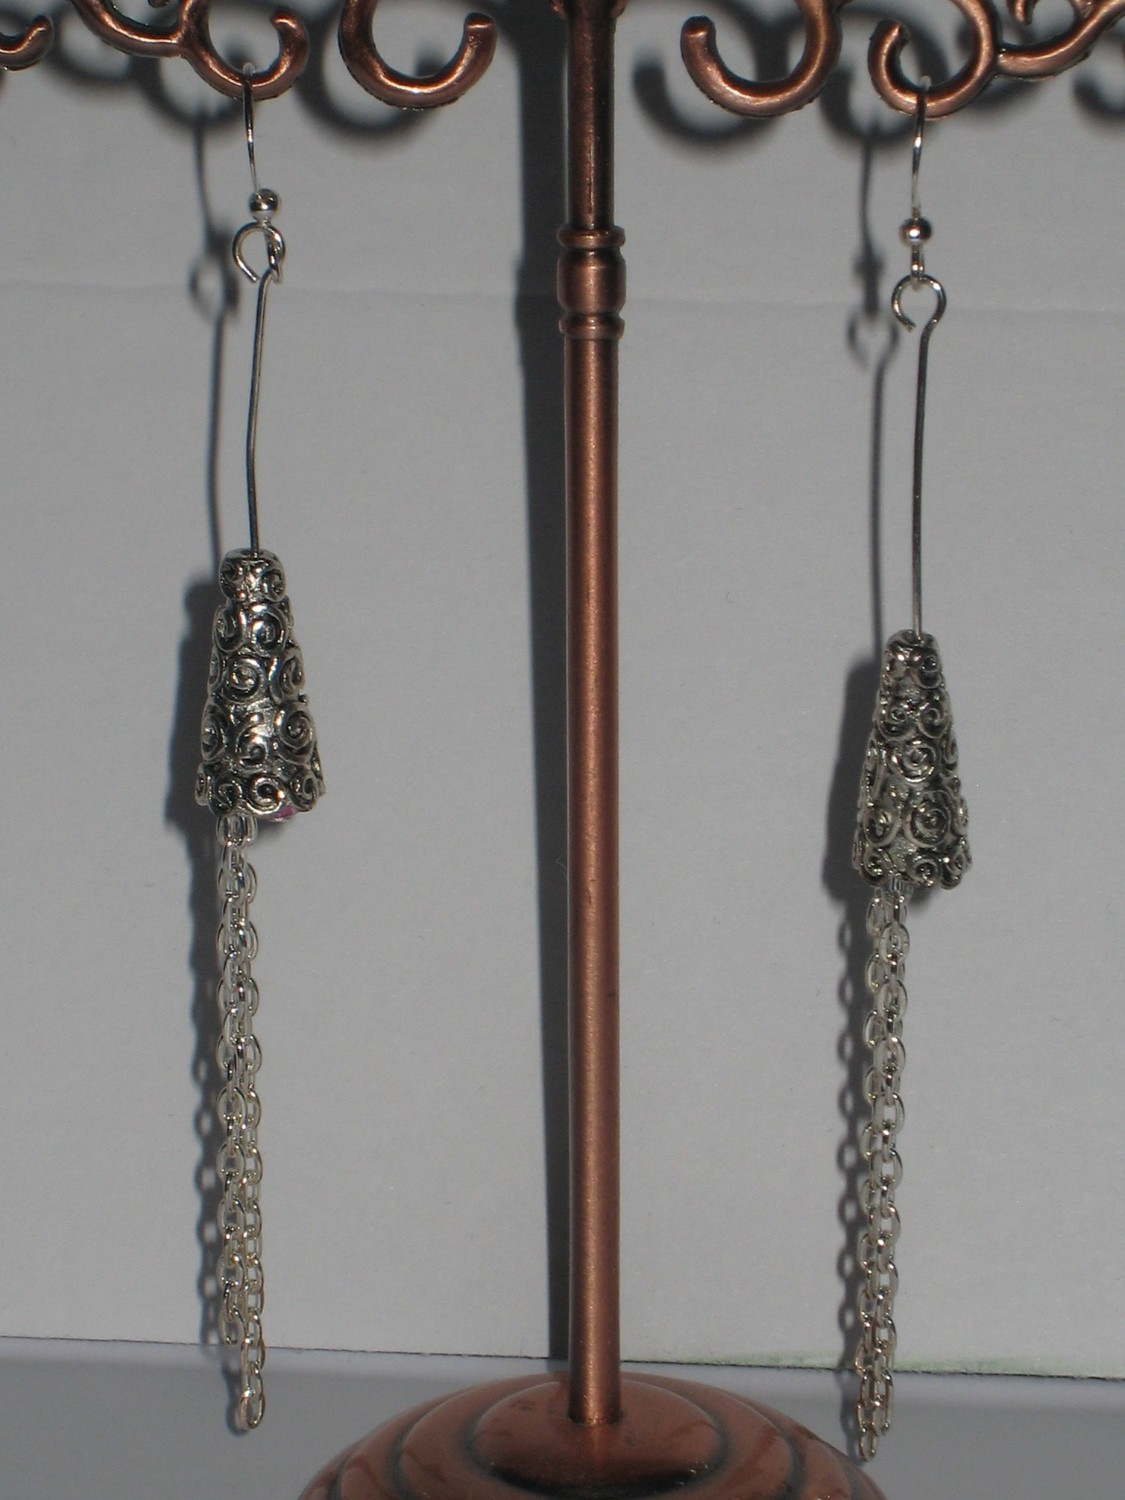 HANGING AROUND EARRINGS/ BOUCLES D'OREILLE ACROCHE PARTOUT